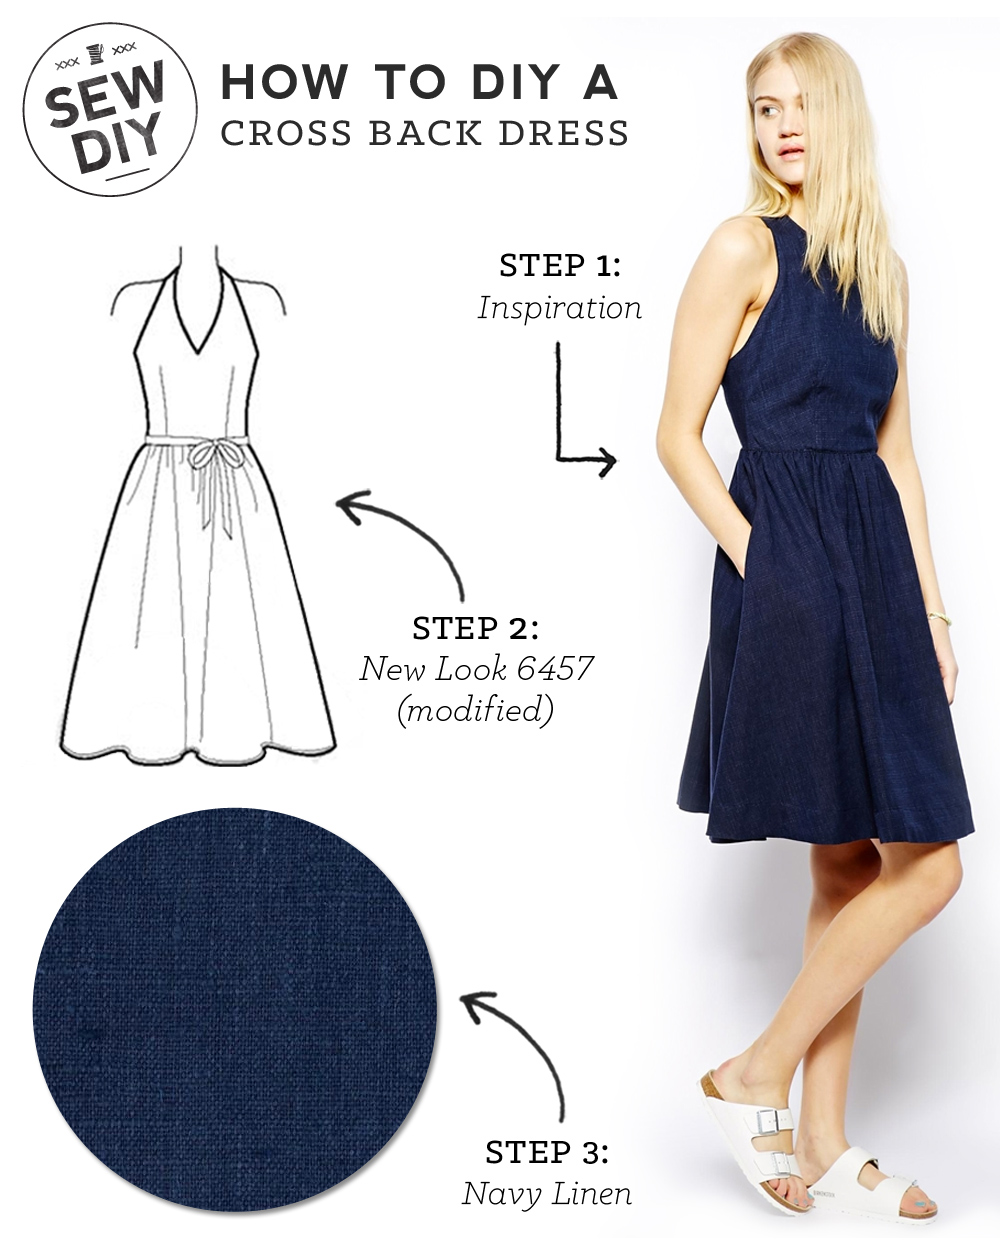 DIY Outfit - Cross Back Dress — Sew DIY